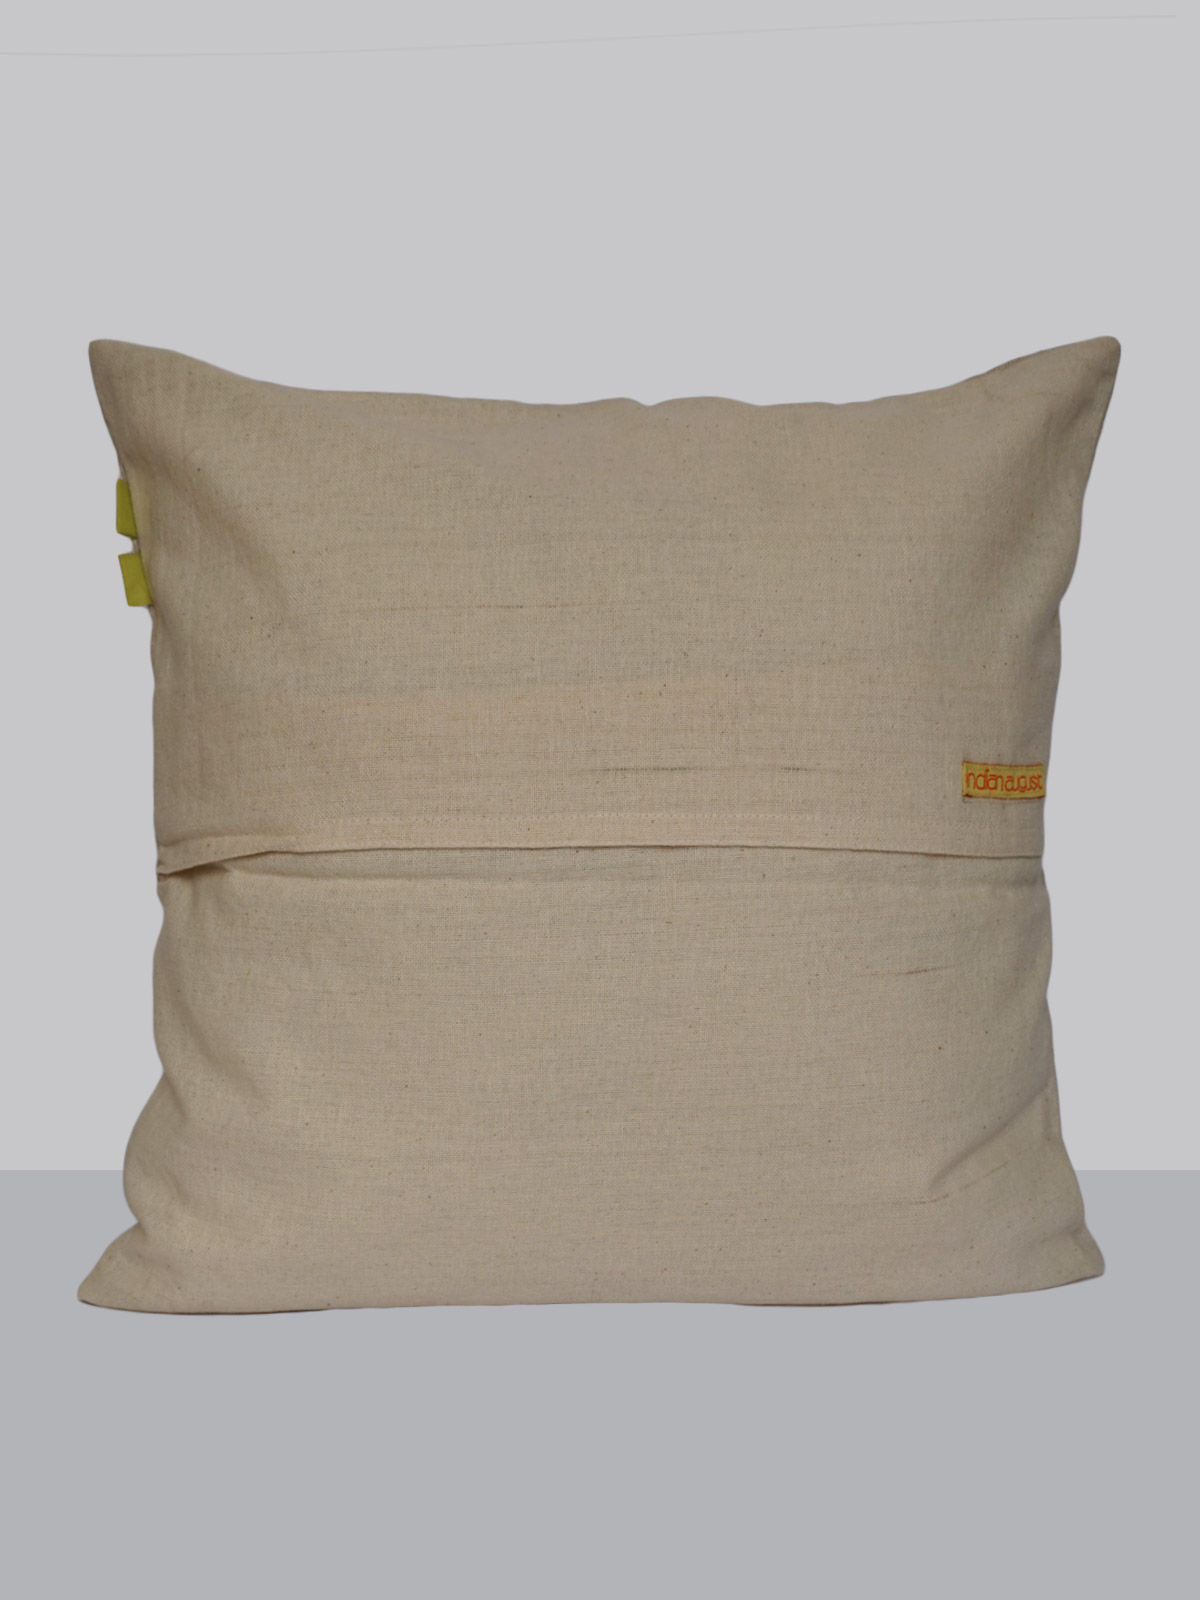 Beige cotton embroided floral pattern cushion cover